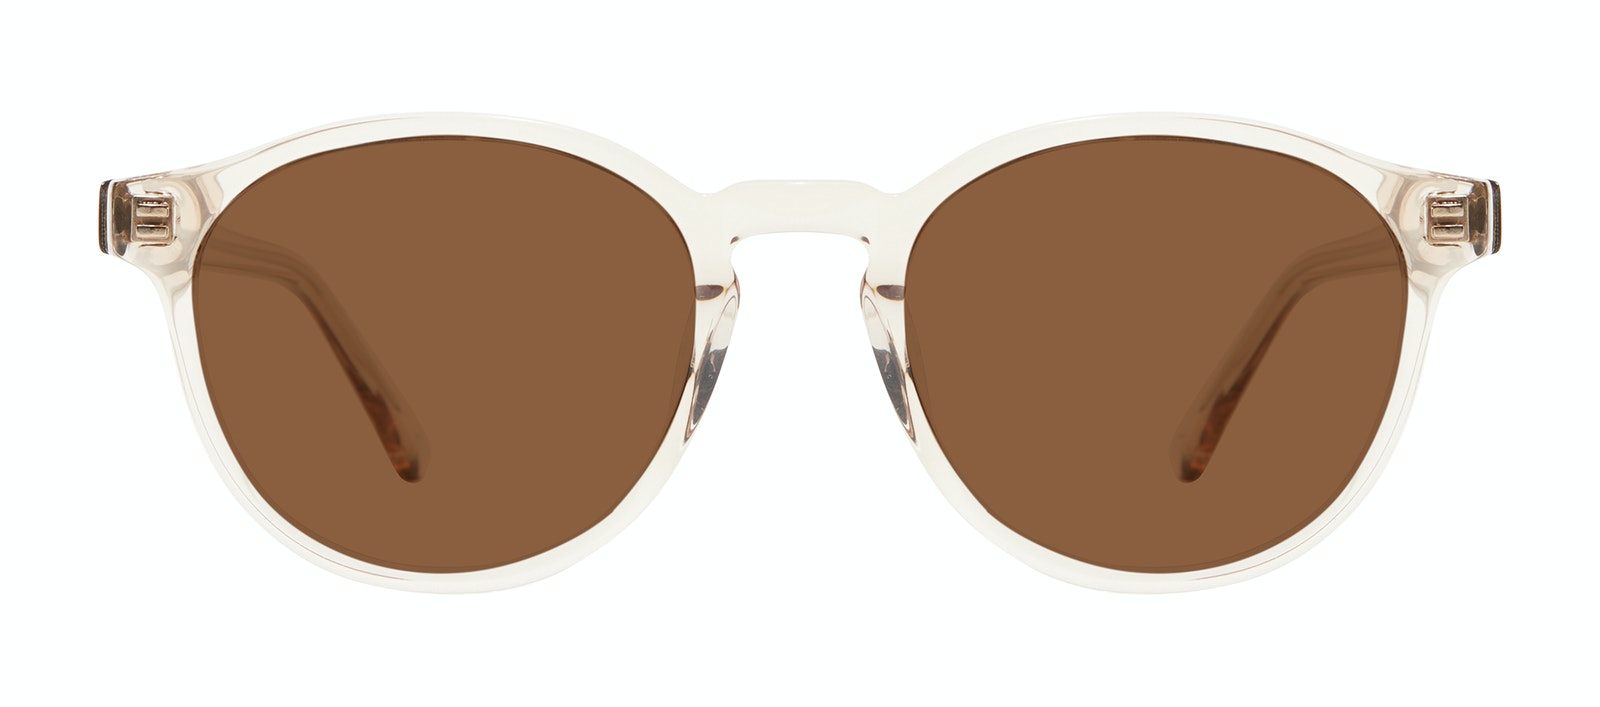 Affordable Fashion Glasses Round Sunglasses Men Aussie Clay Front